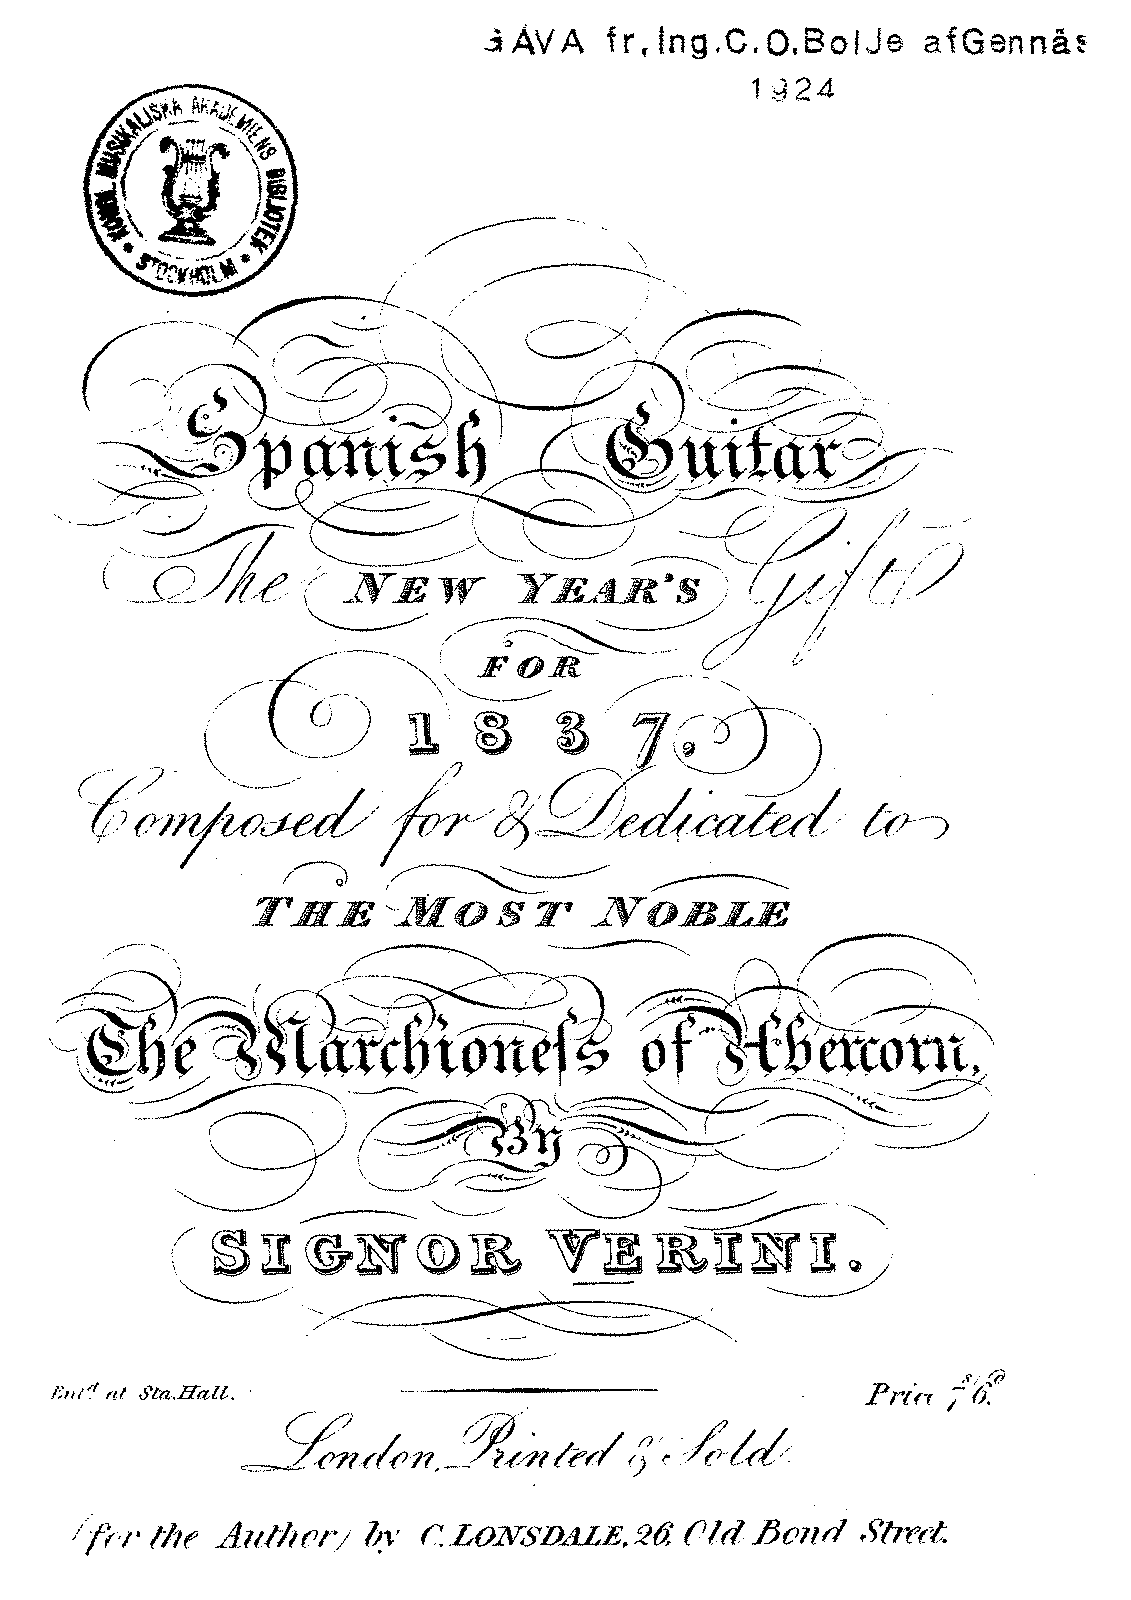 PMLP95894-Verini - Spanish Guitar (gift for 1837).pdf